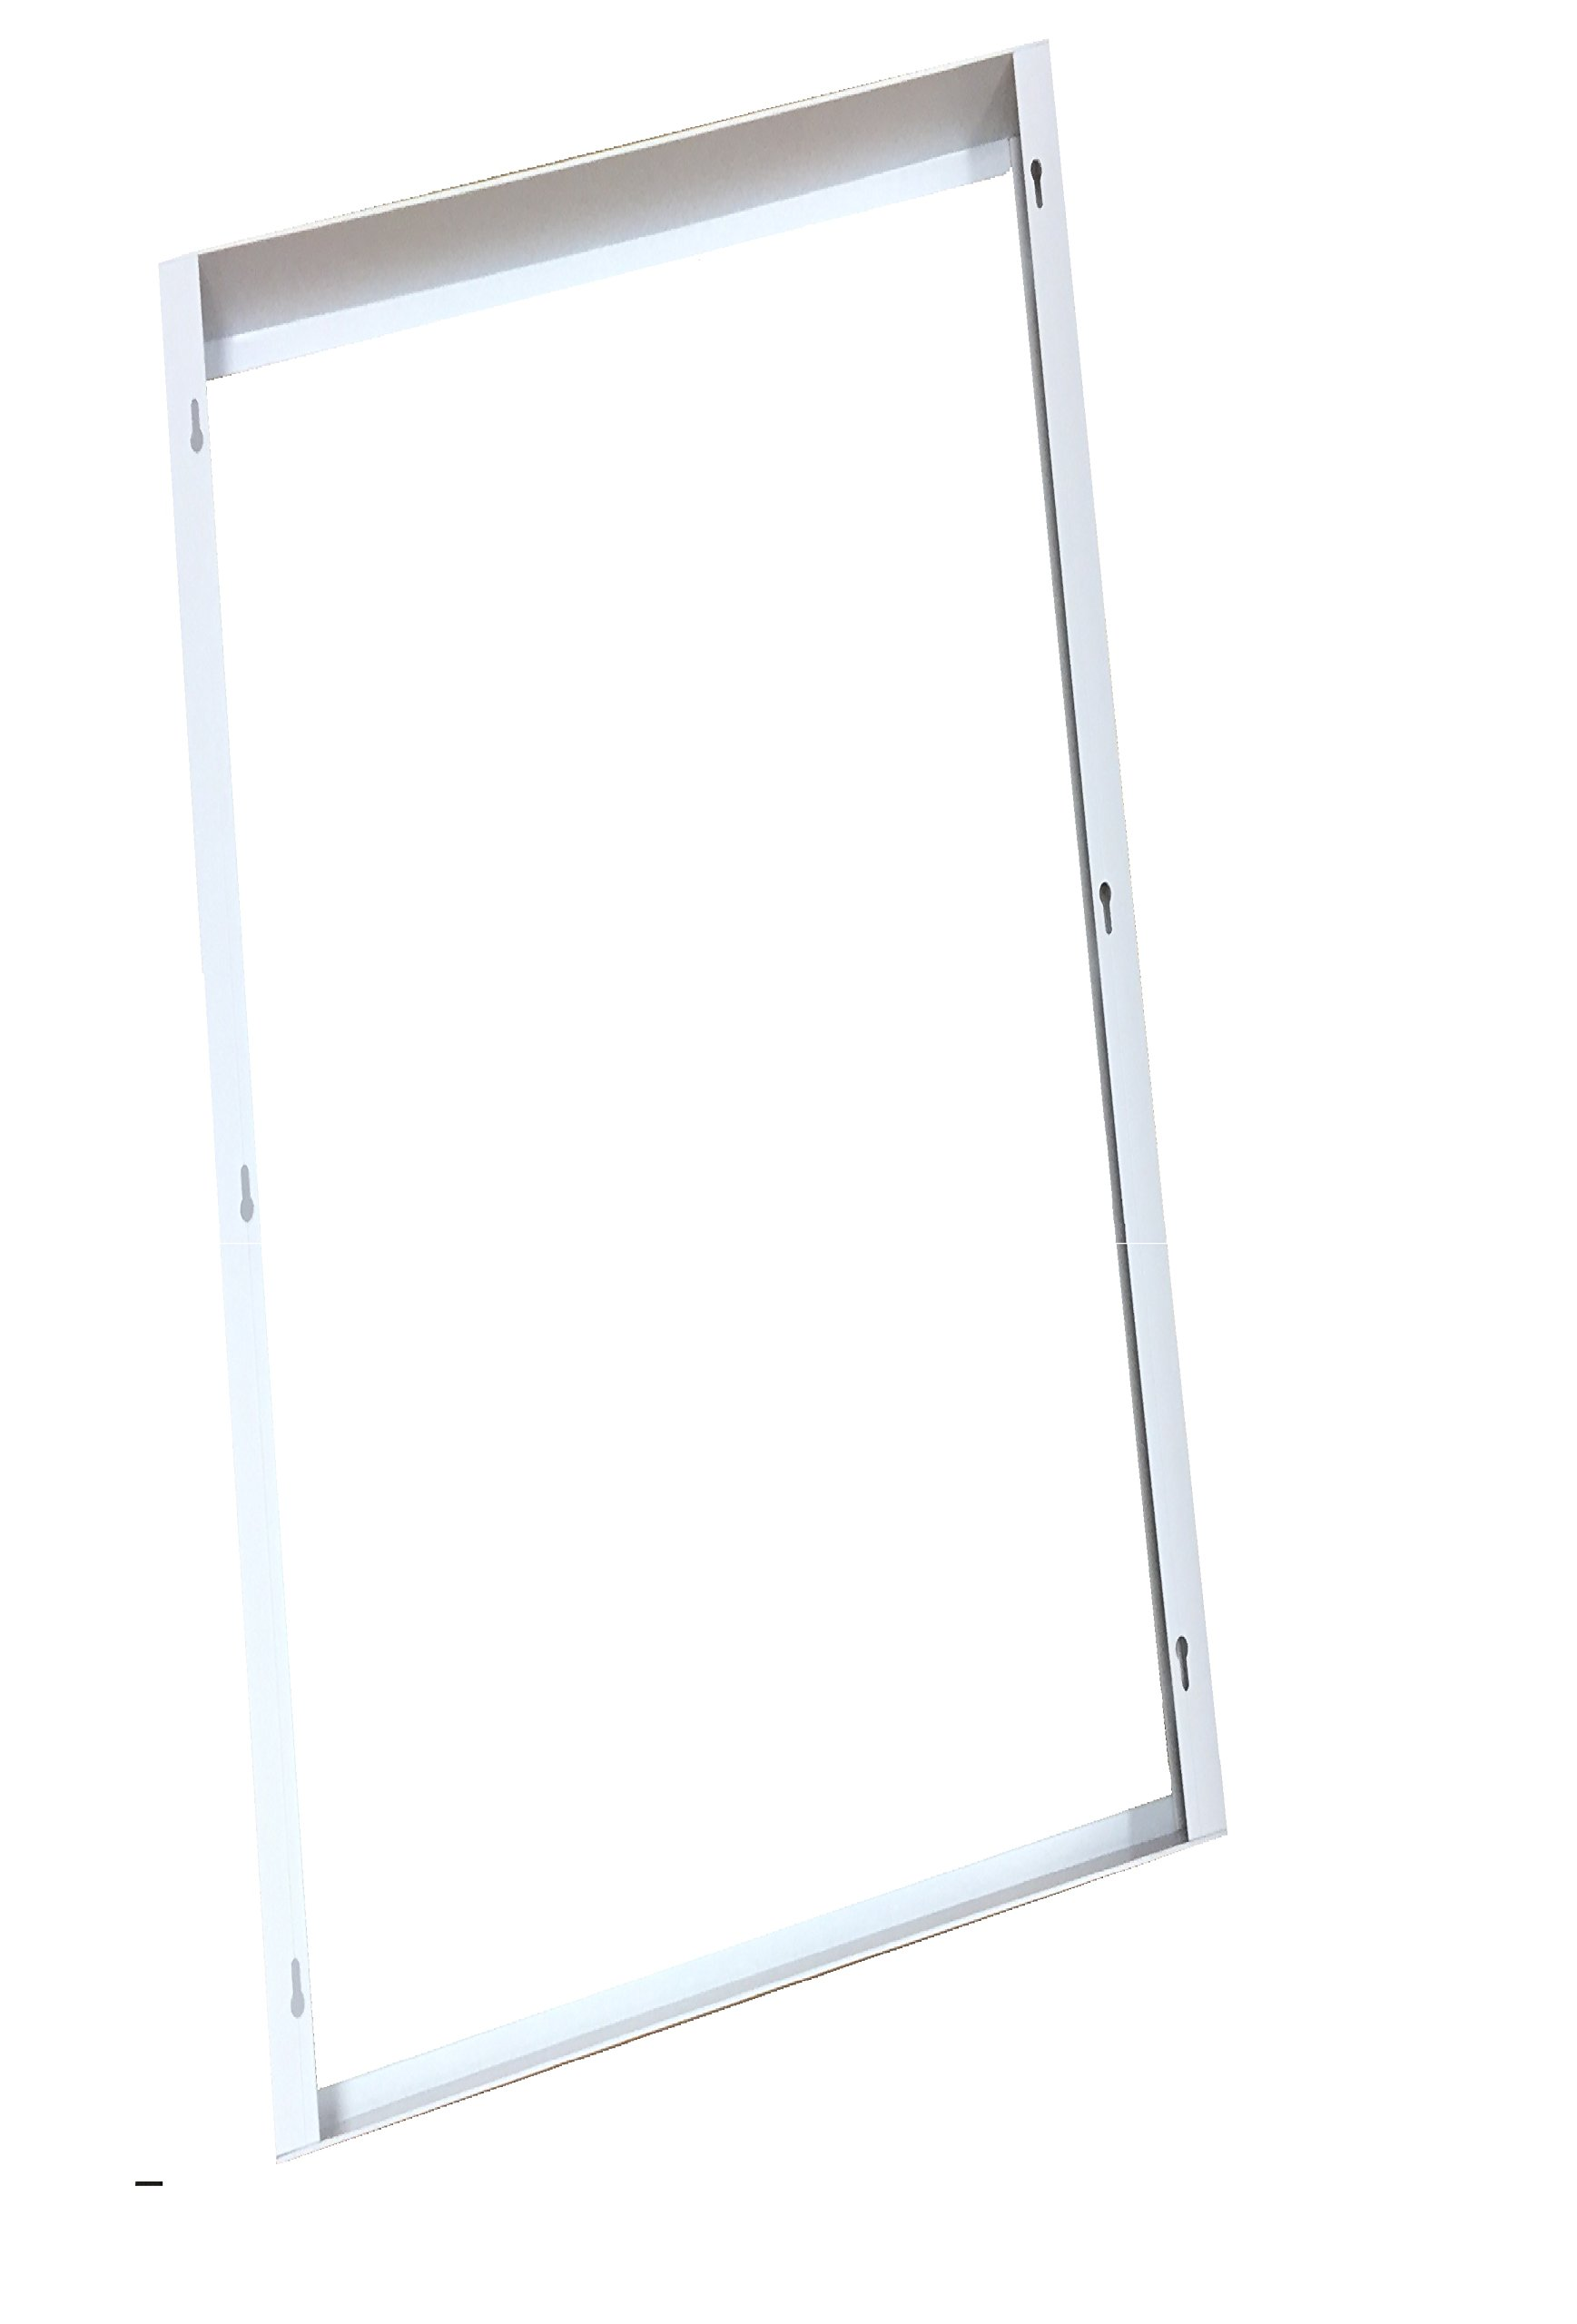 WennoW Commercial Aluminum Surface Mount Kit for 2x2' or 2x4' LED Flat Panel Light for Drop Ceiling Mount (2x4')